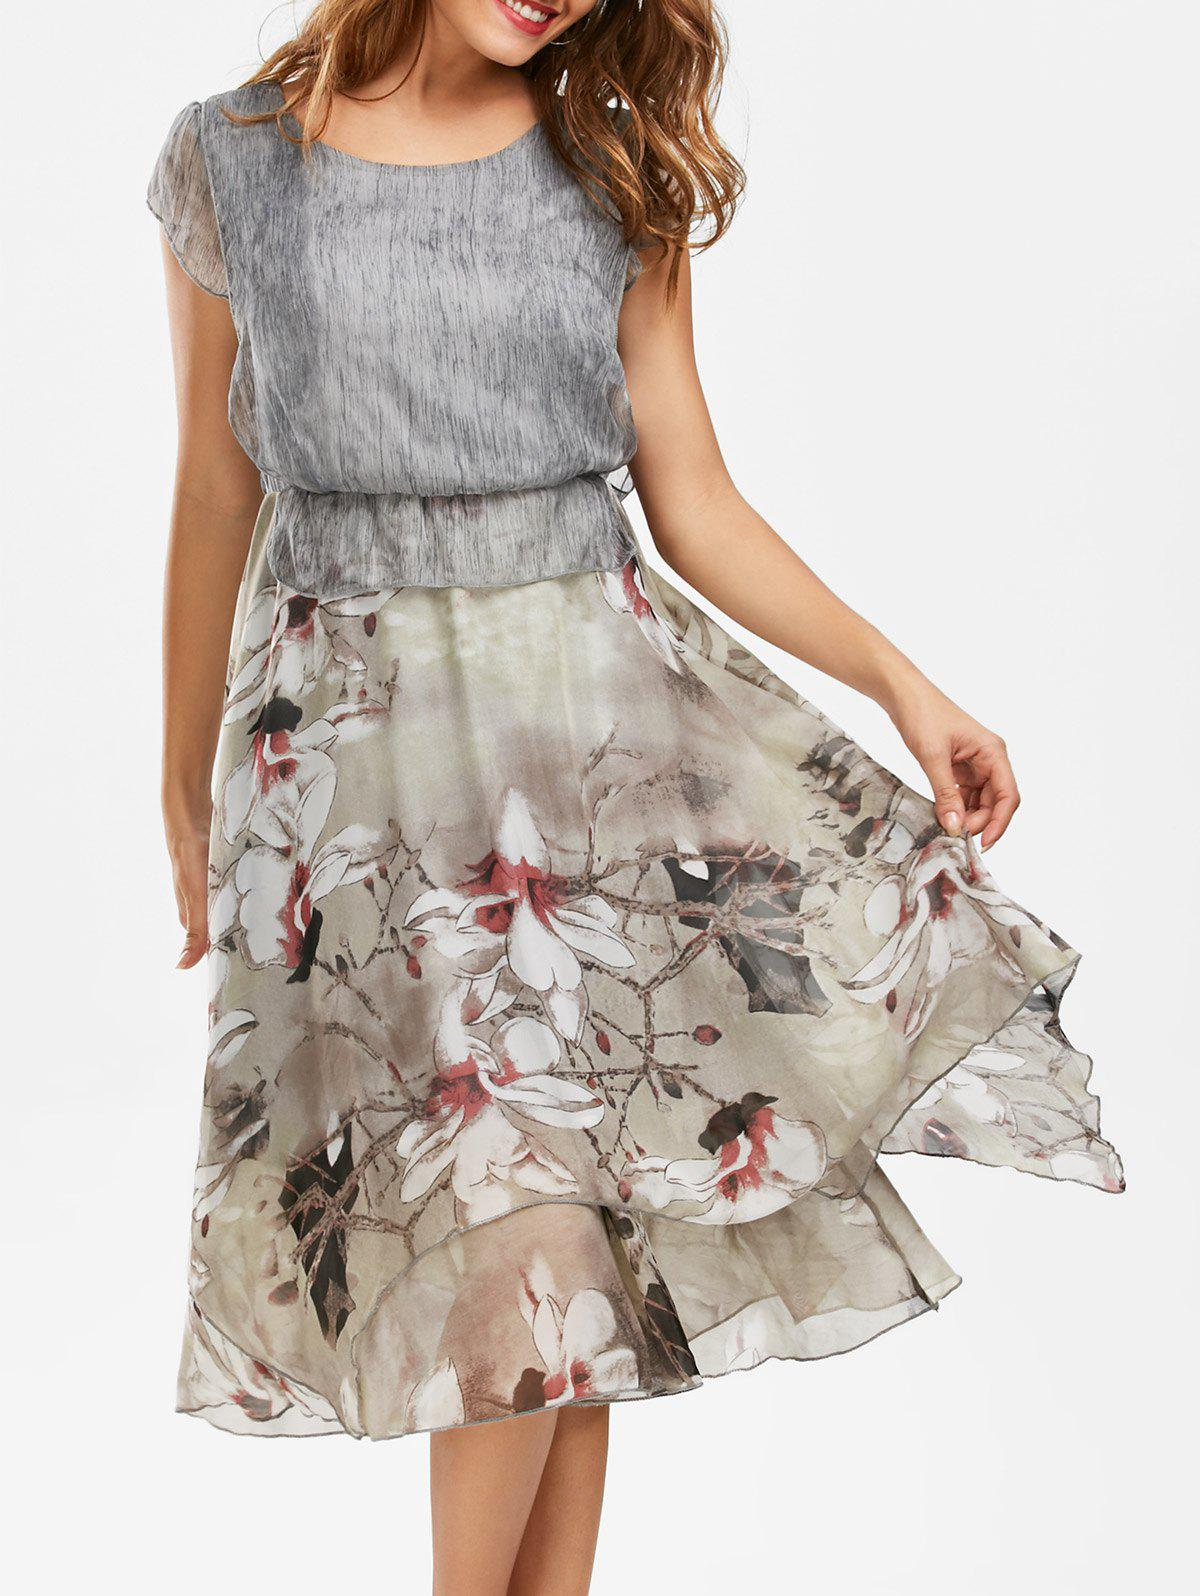 Bohemian Floral Print Peplum Midi Dress - GRAY M